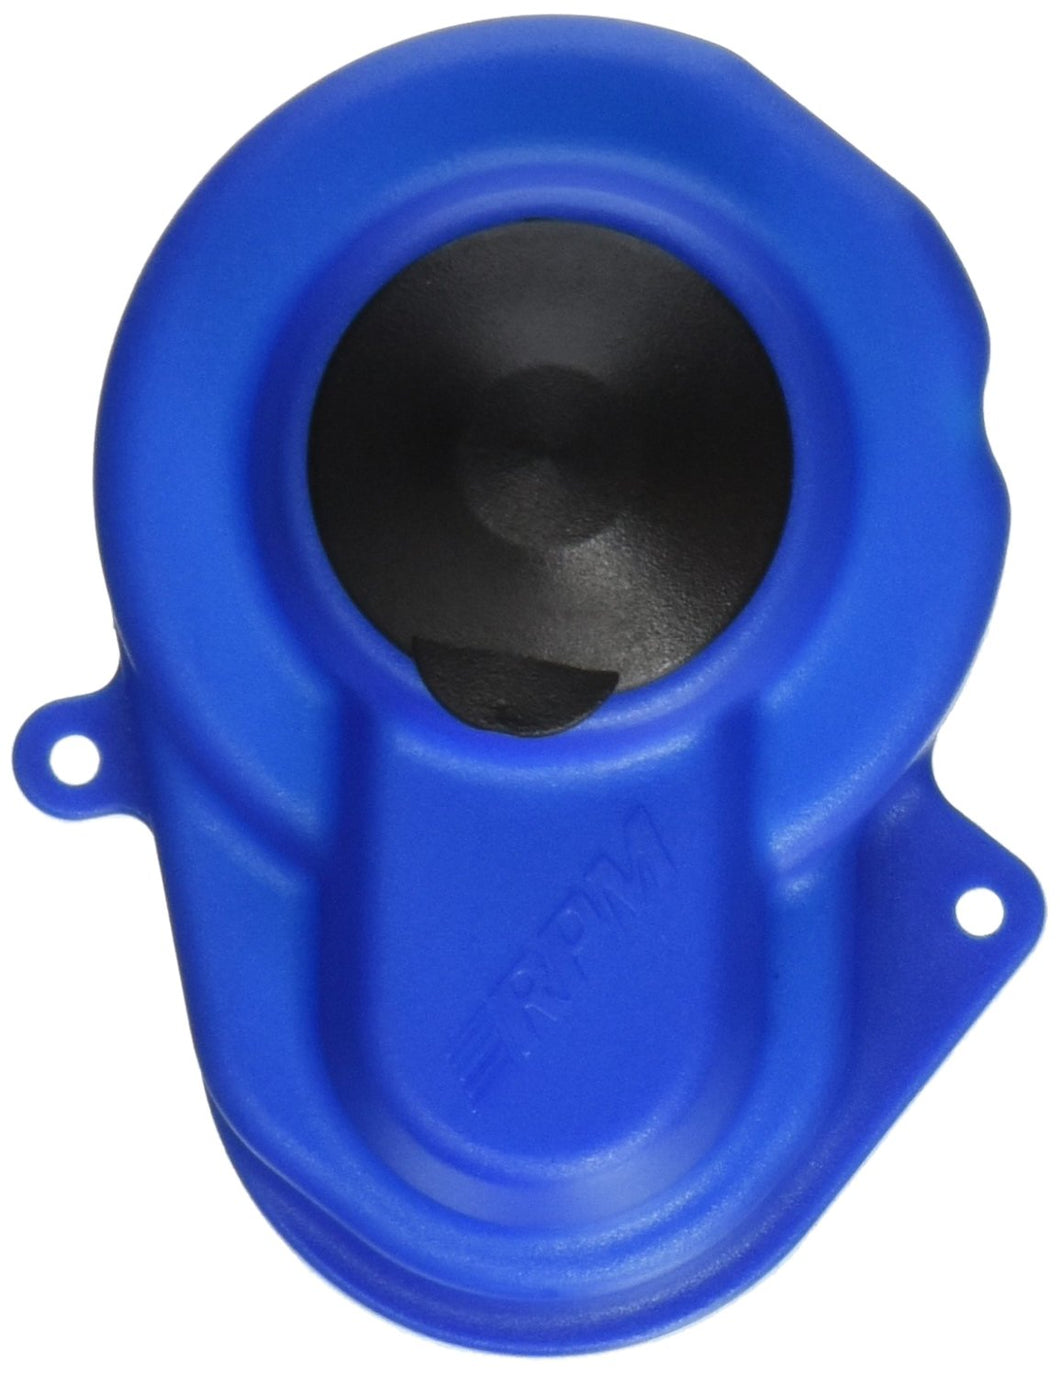 RPM Traxxas Sealed Gear Cover, Blue - Hobby Shop